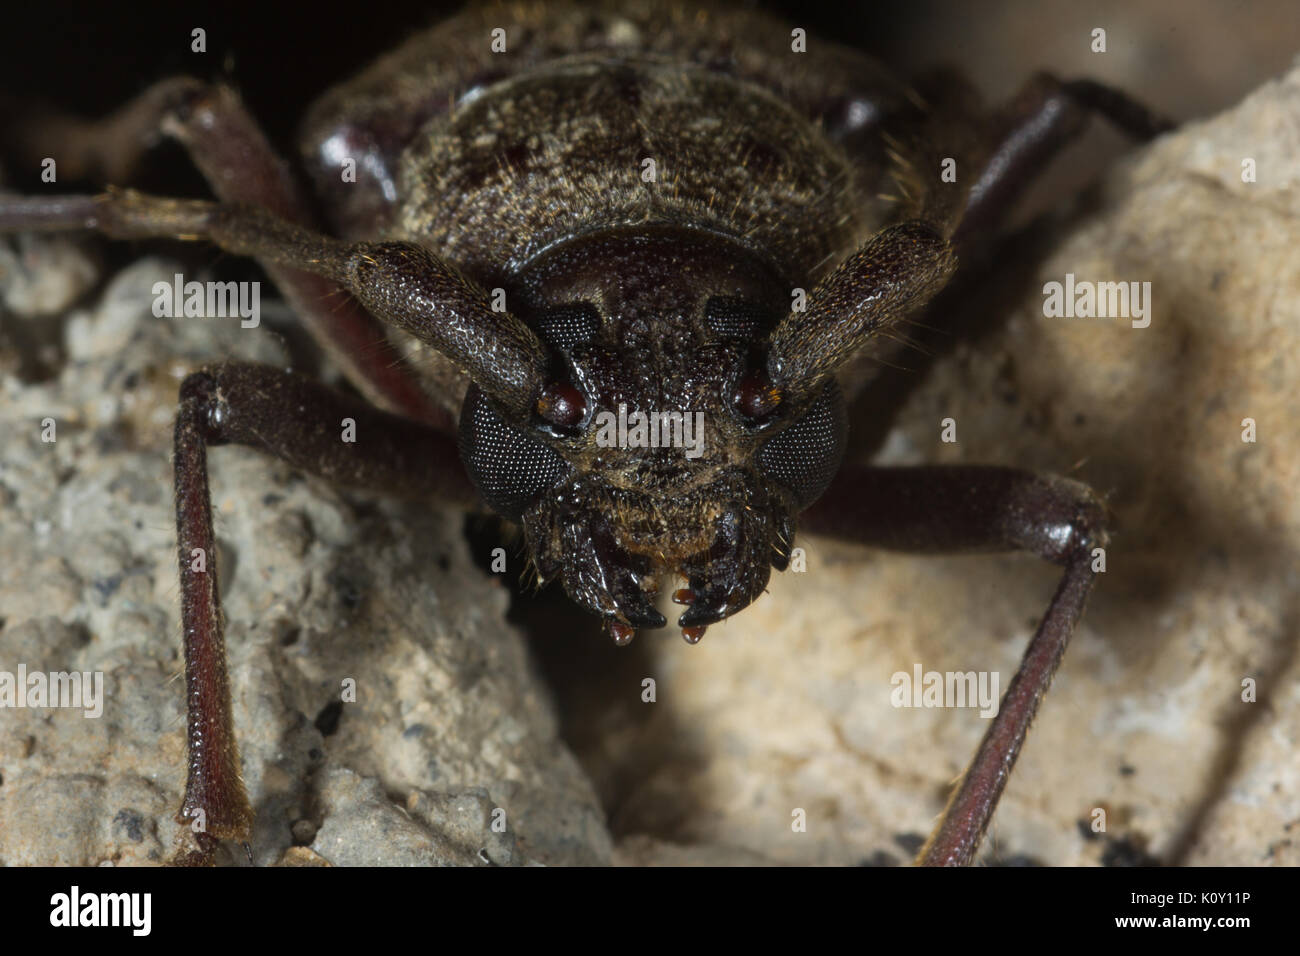 Anterior view of a female Palo Verde beetle on rocks - Stock Image